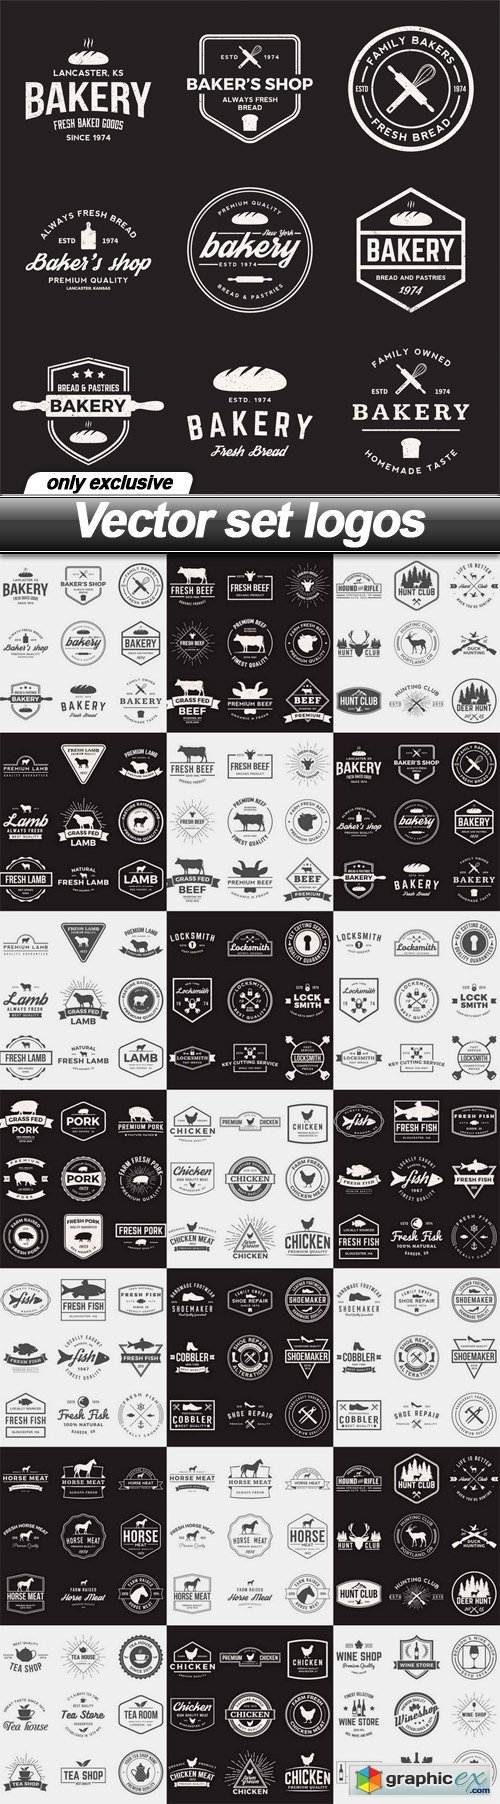 Vector set logos - 21 EPS